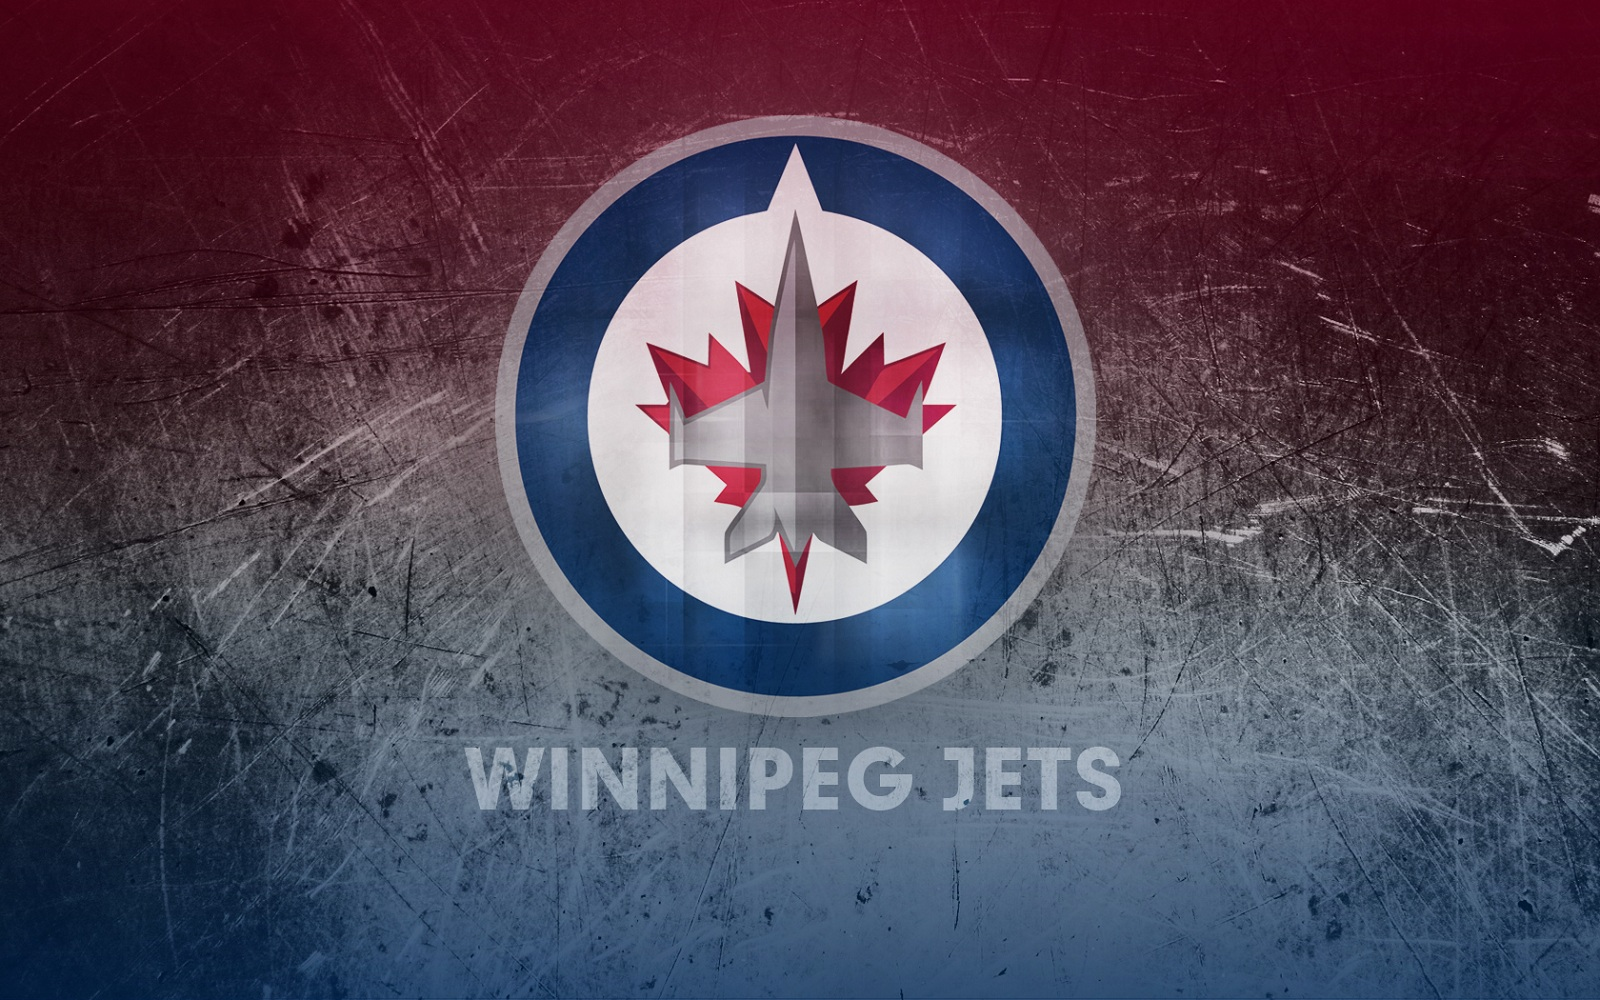 Hockey Winnipeg Jets wallpaper 1600x1000 128805 WallpaperUP 1600x1000